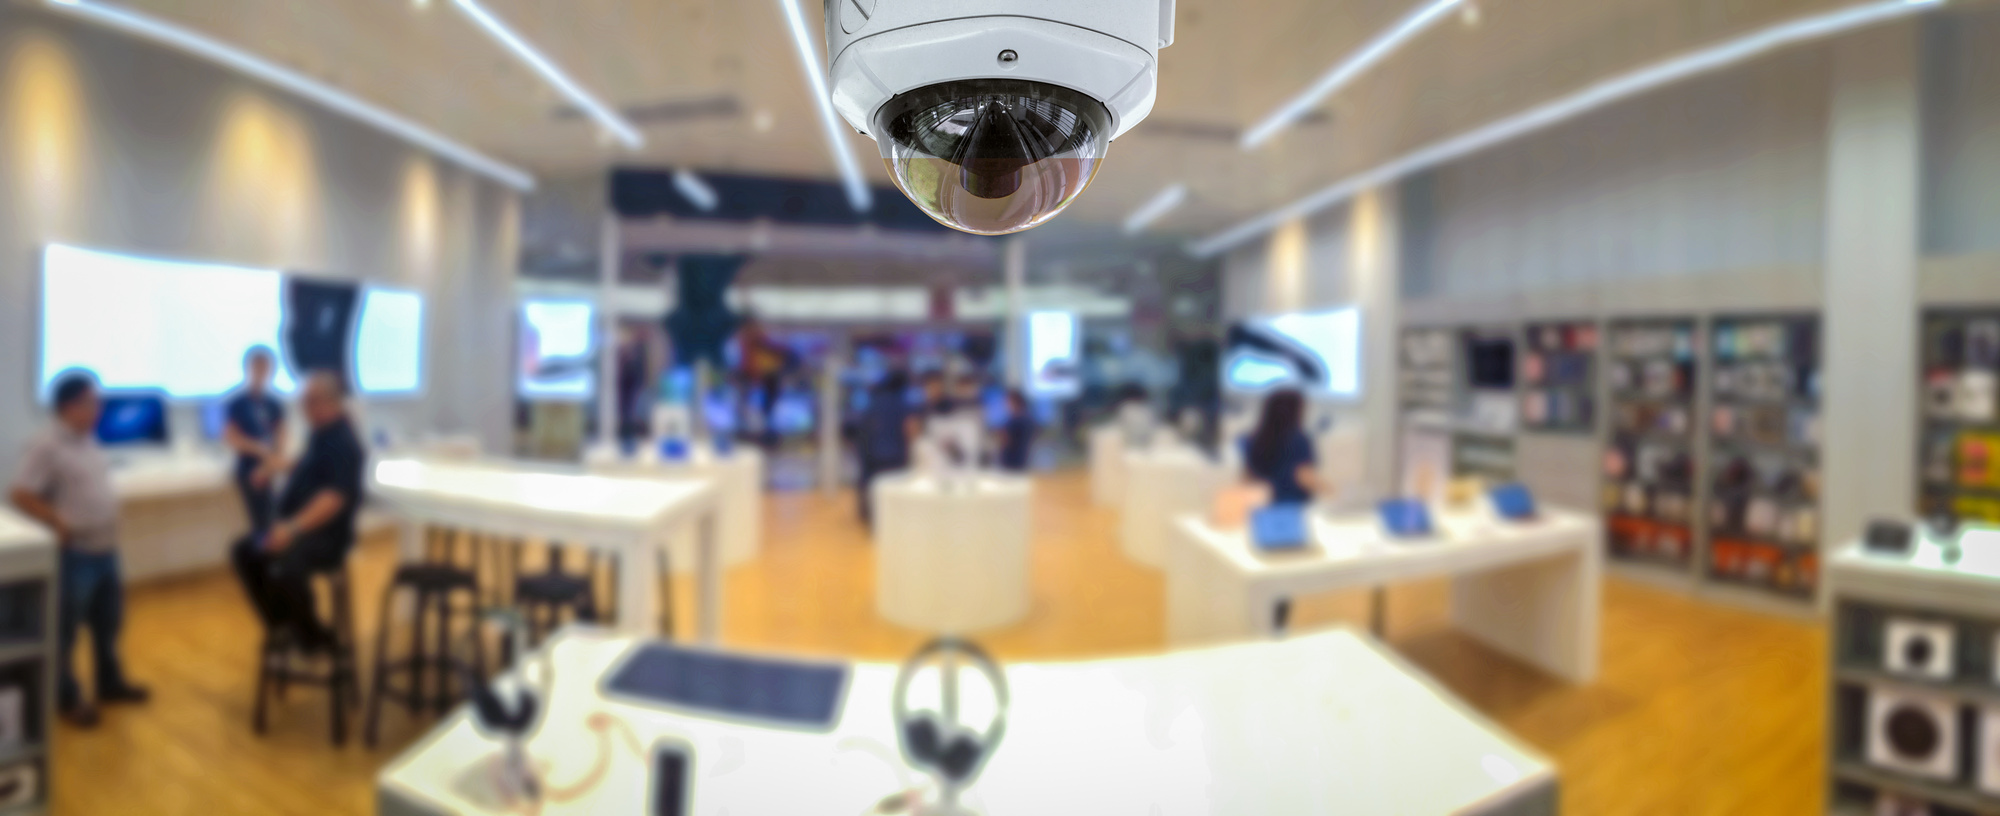 The Top 5 Best Business Security Systems to Have in 2019